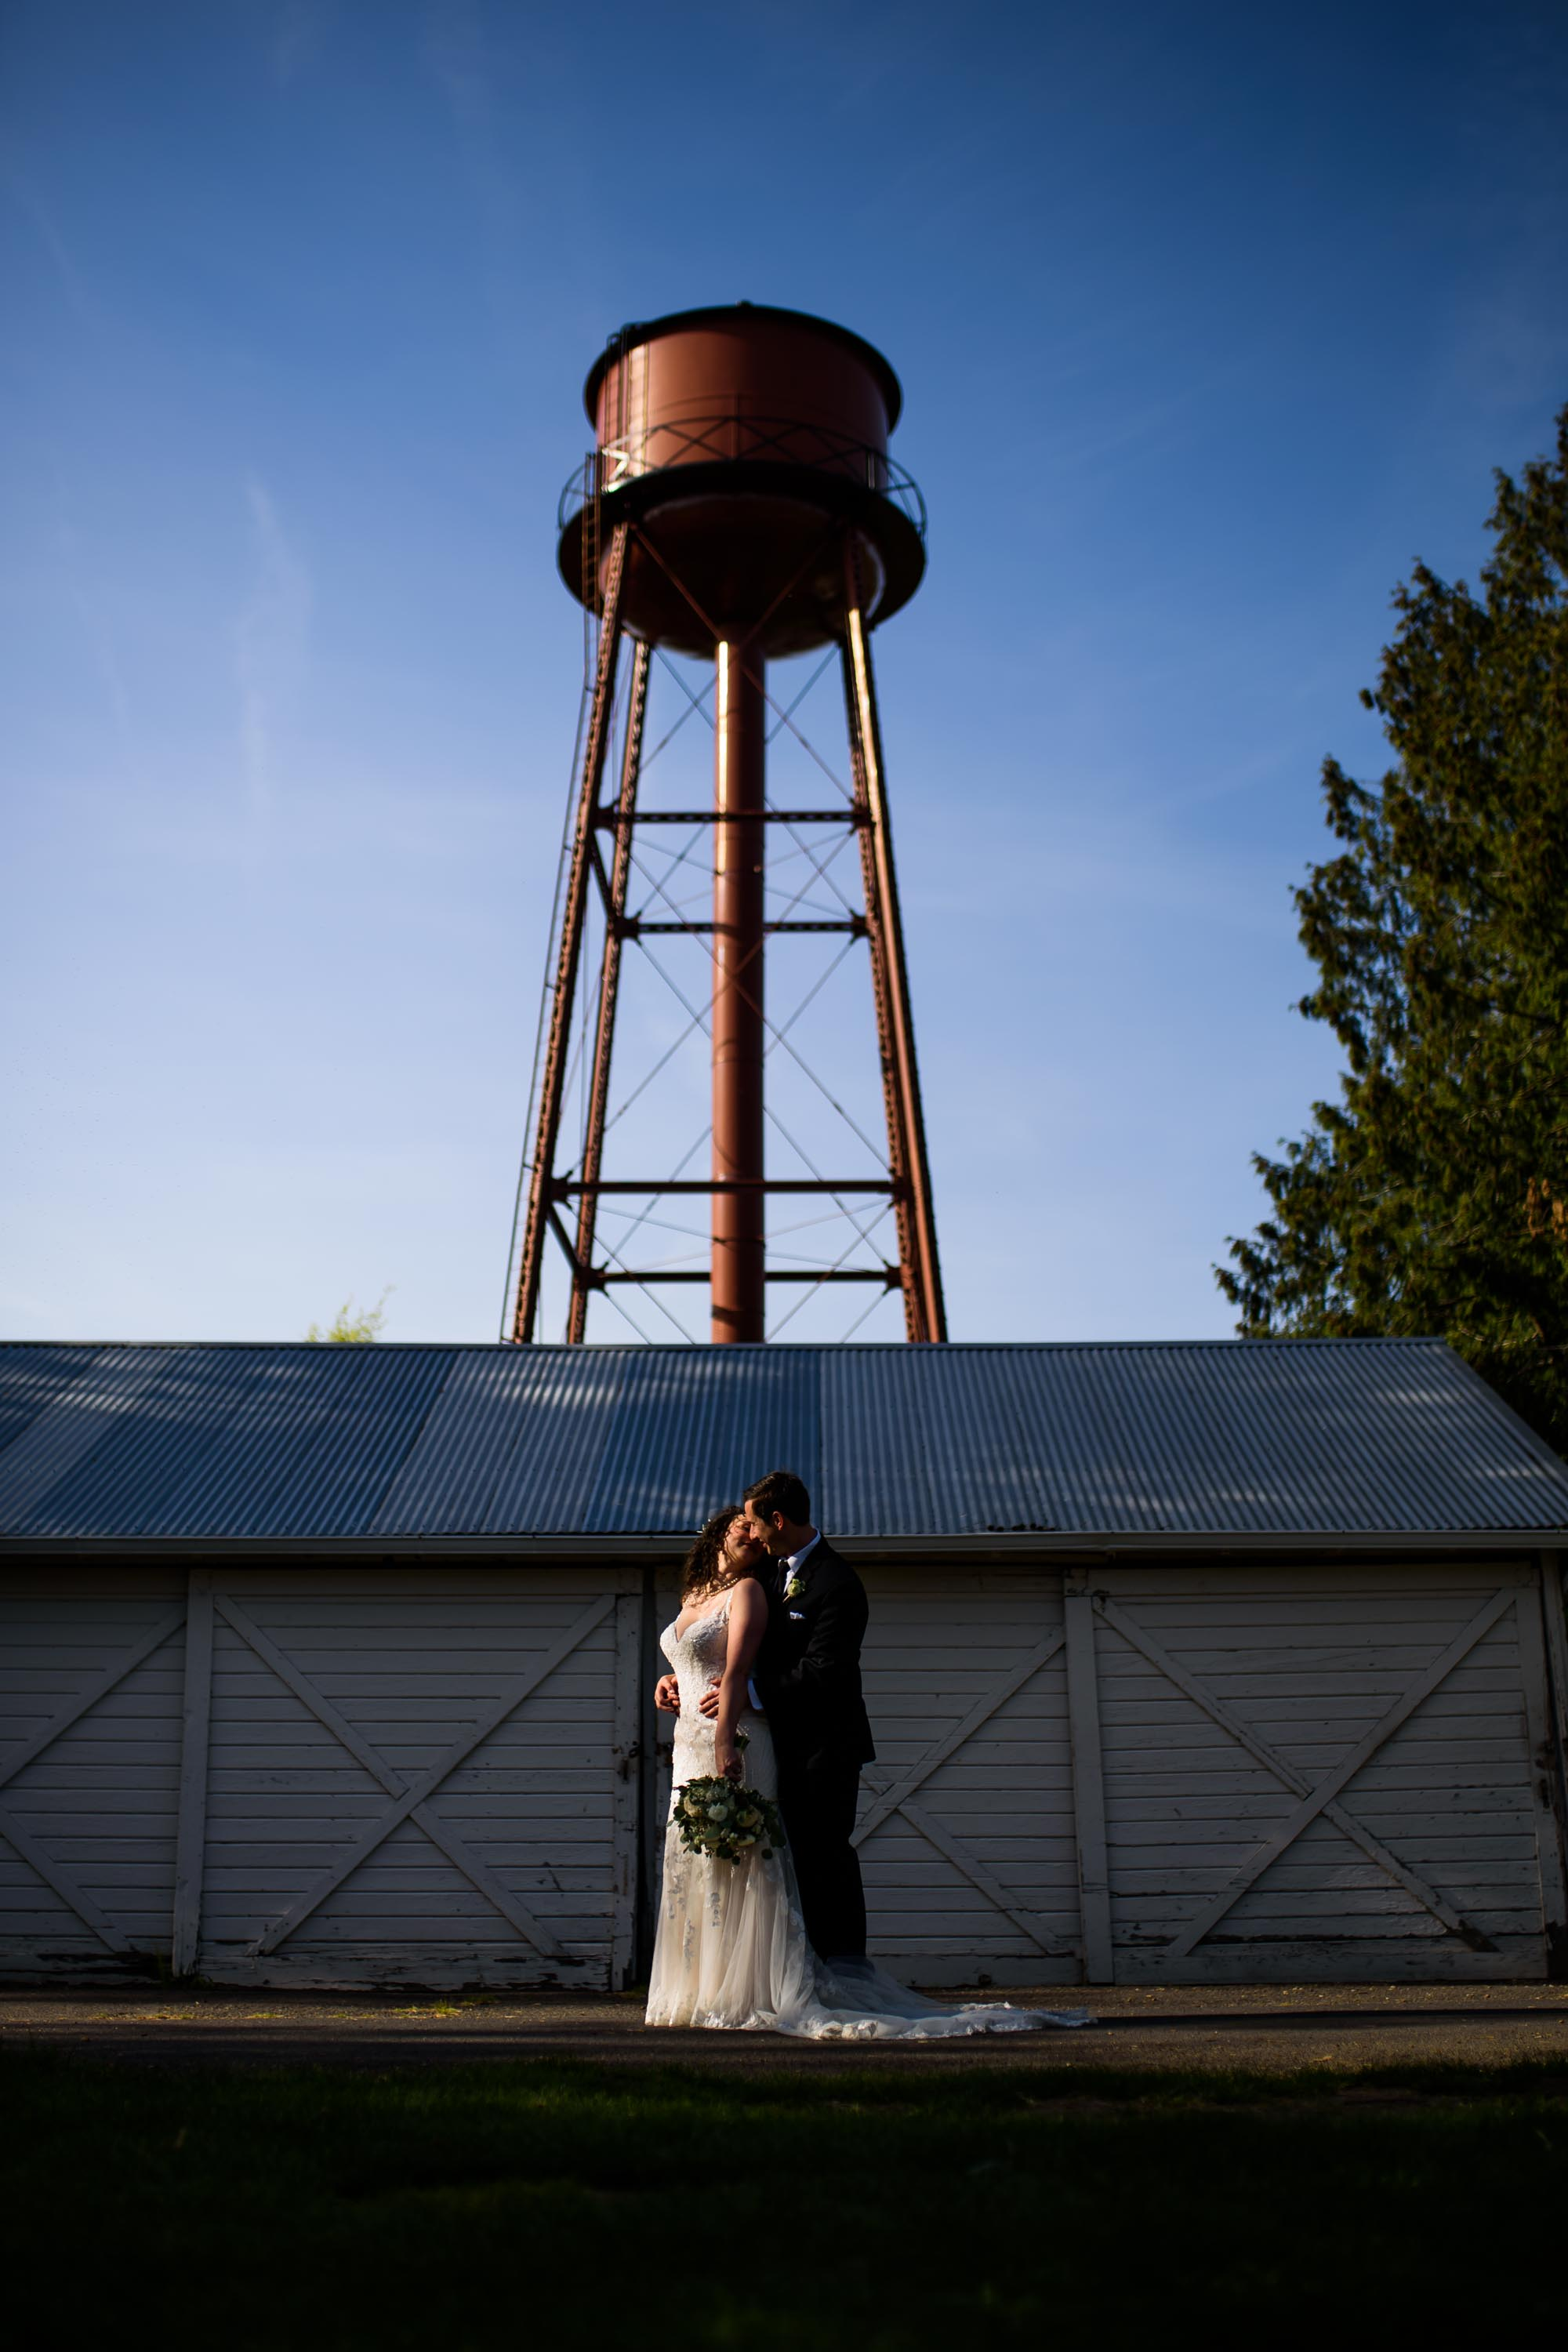 edgefield wedding photos65.jpg